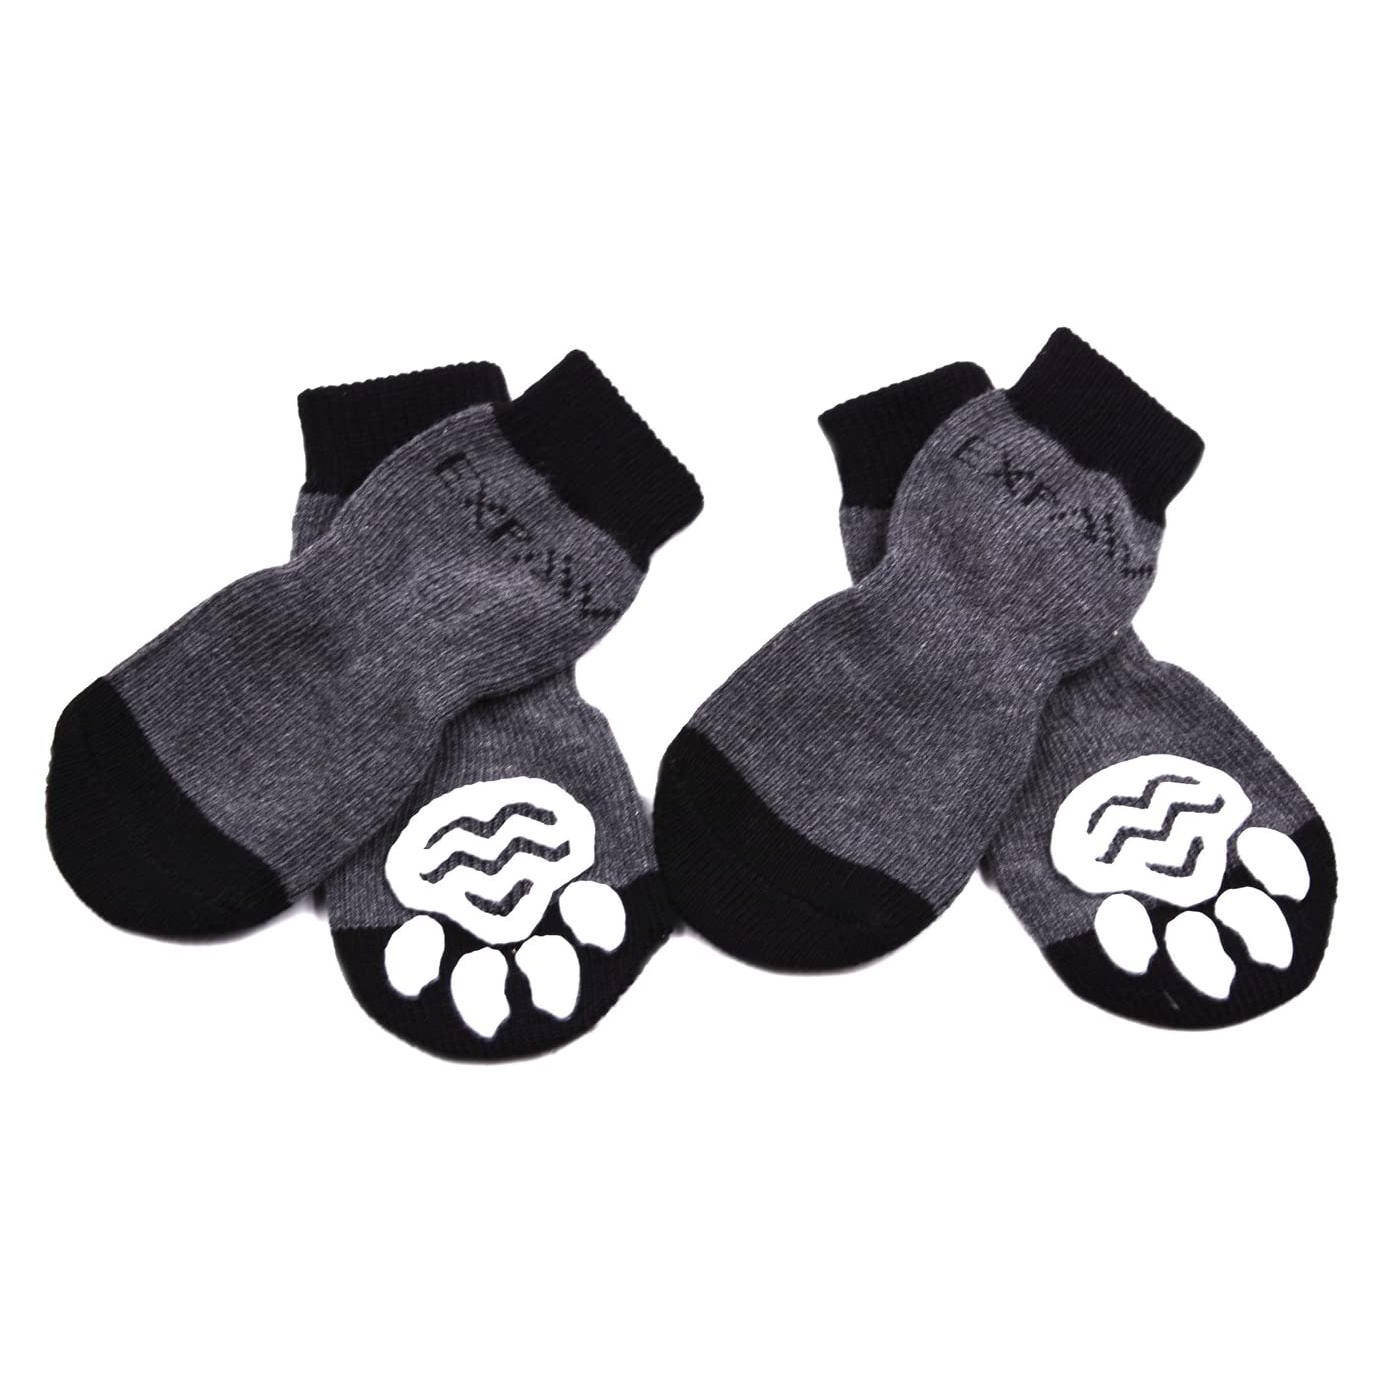 expawlorer-anti-slip-dog-socks-for-indoor-wear